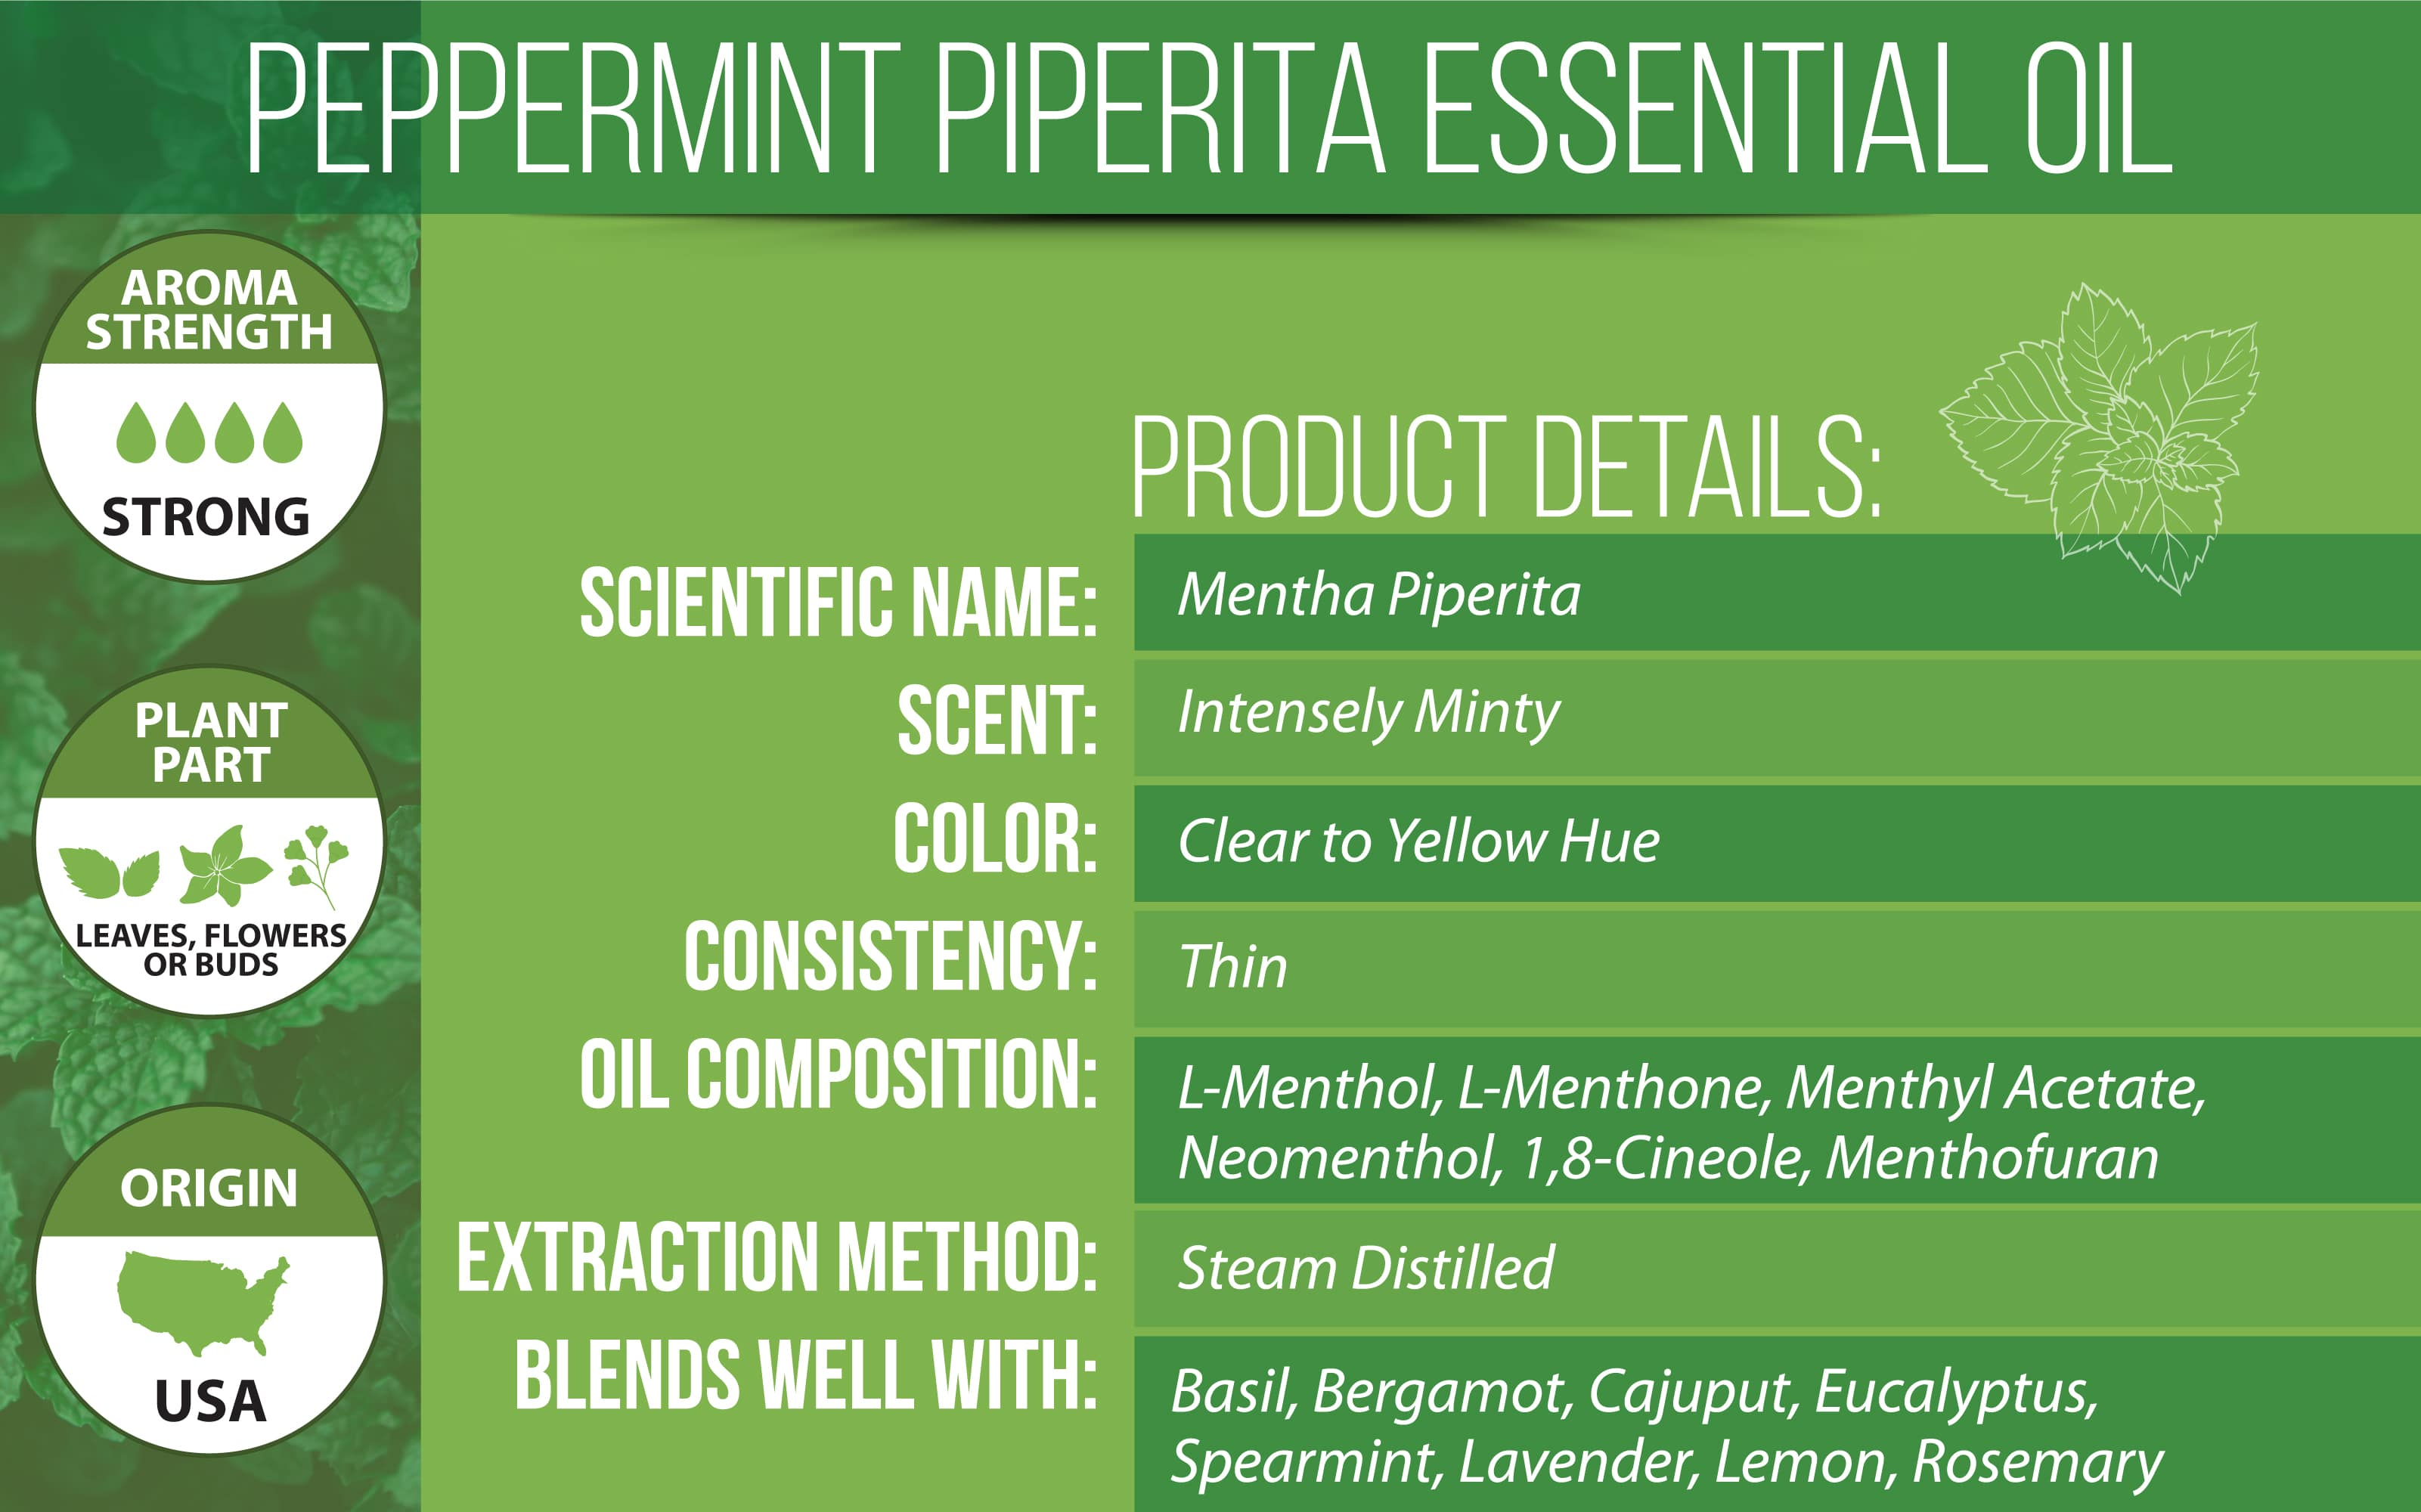 Peppermint Essential Oil Product Details